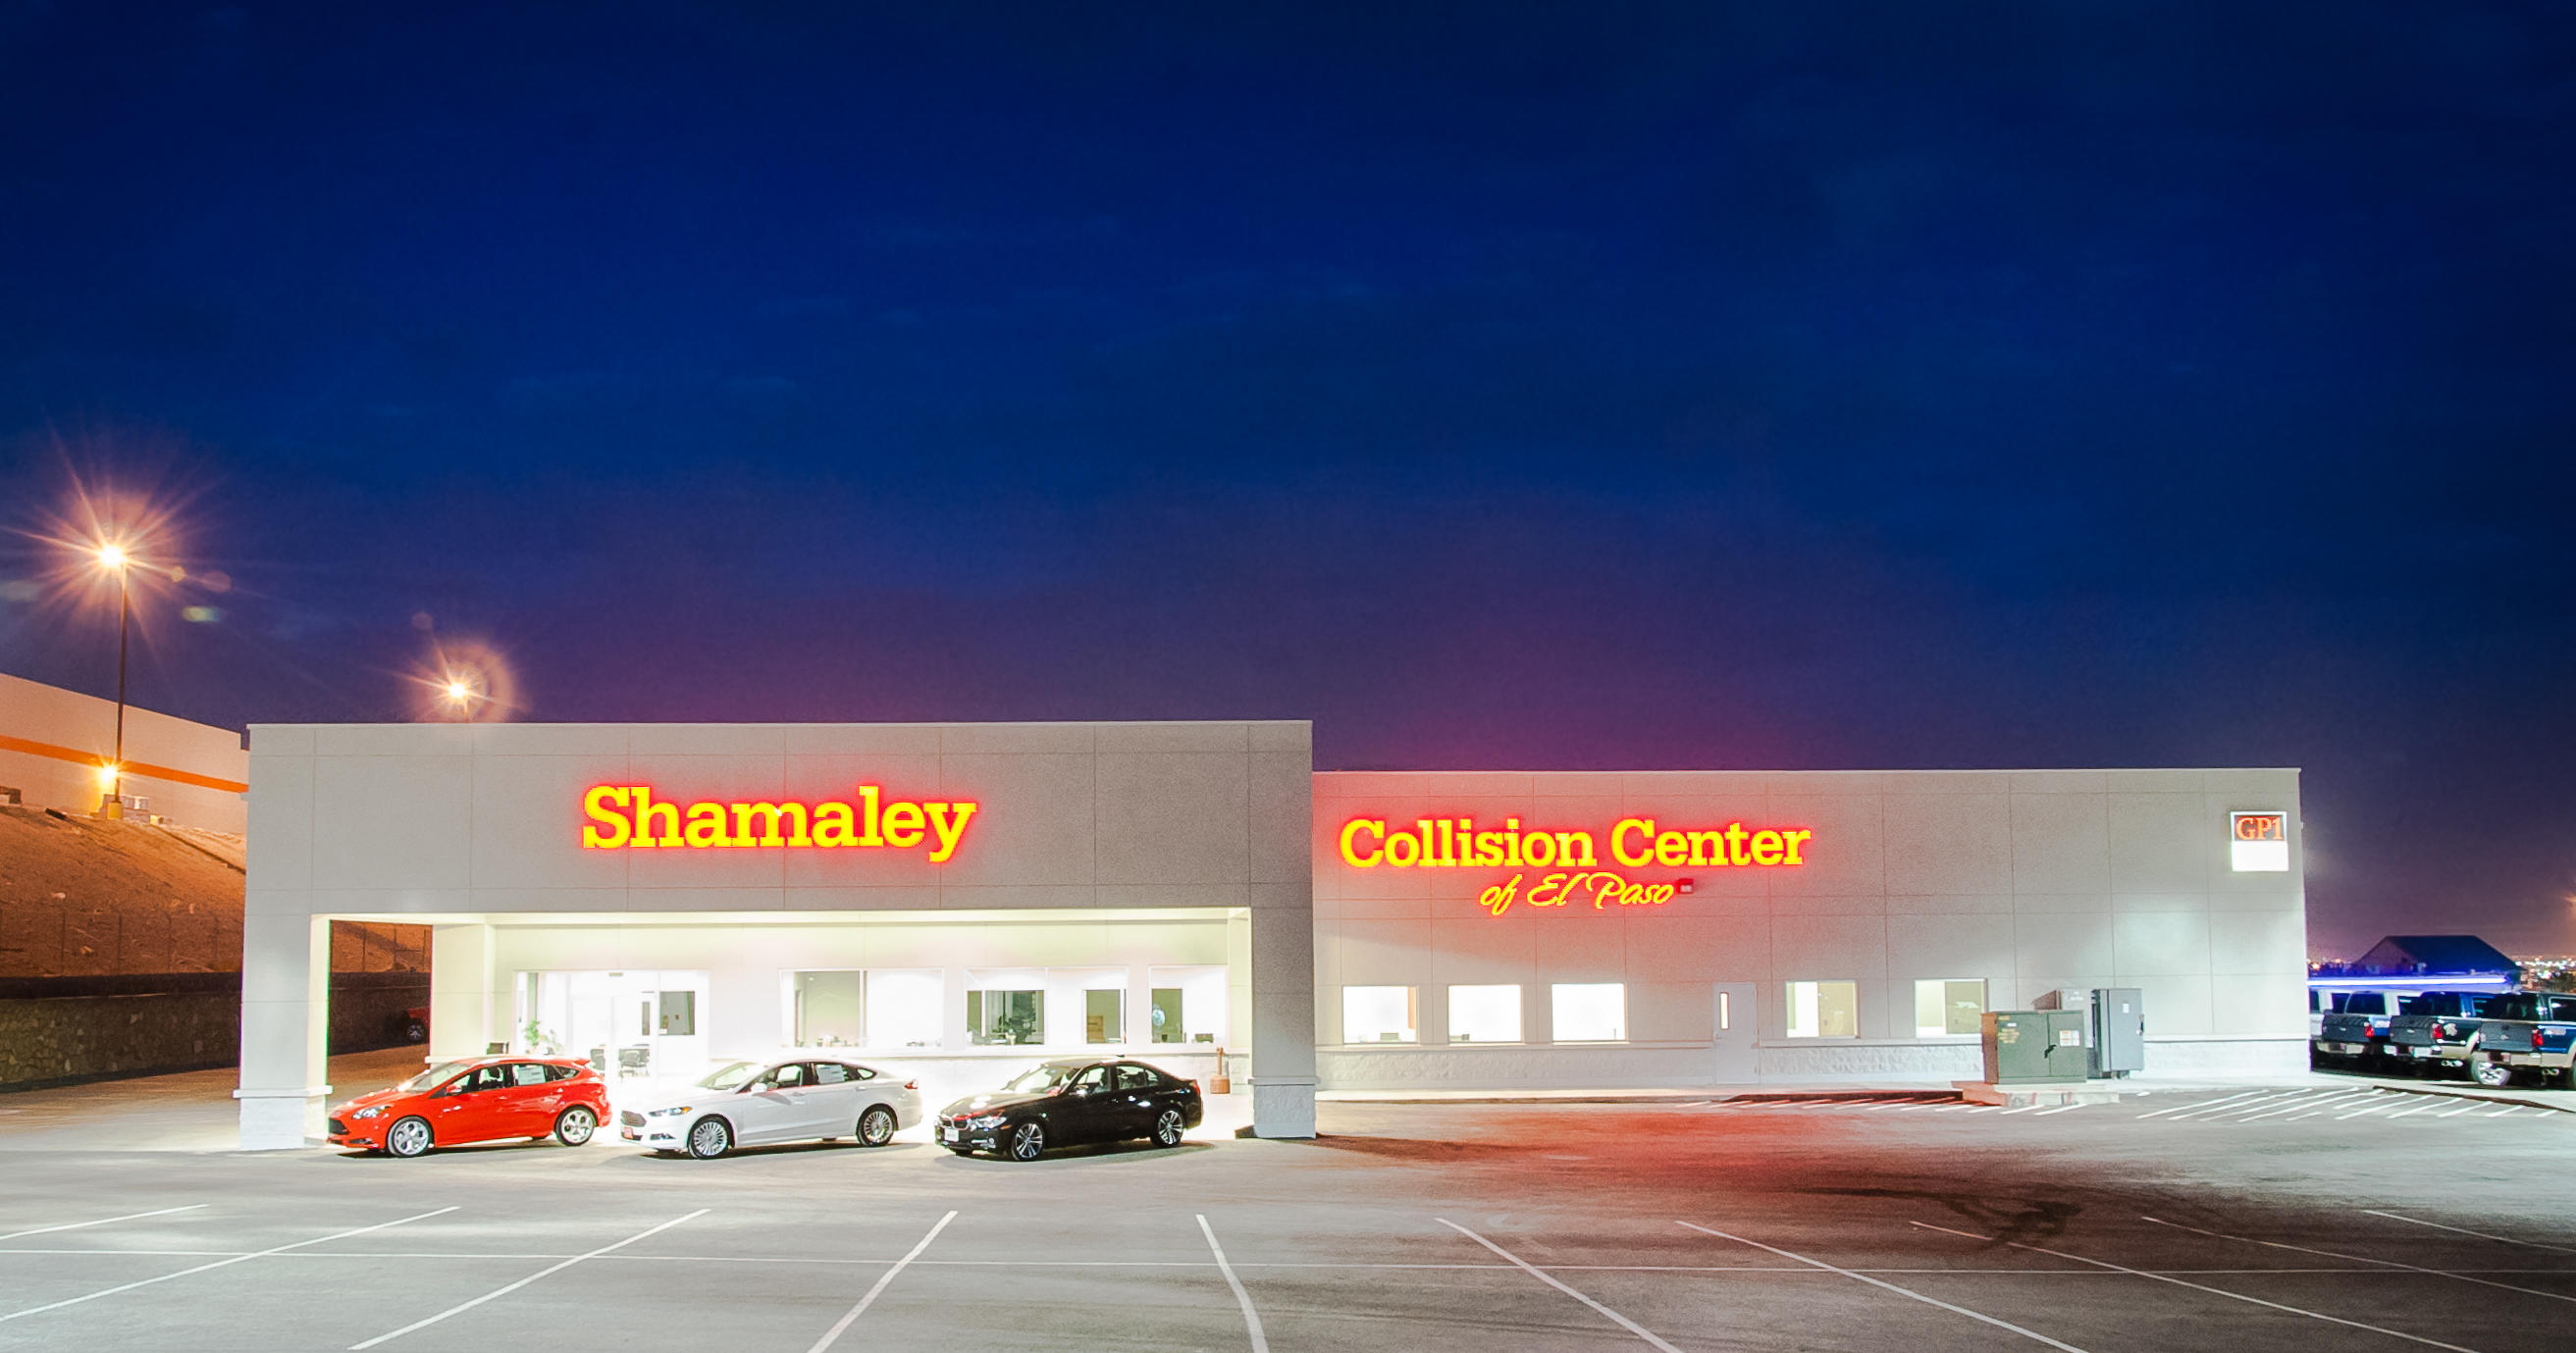 shamaley collision center of el paso el paso texas tx